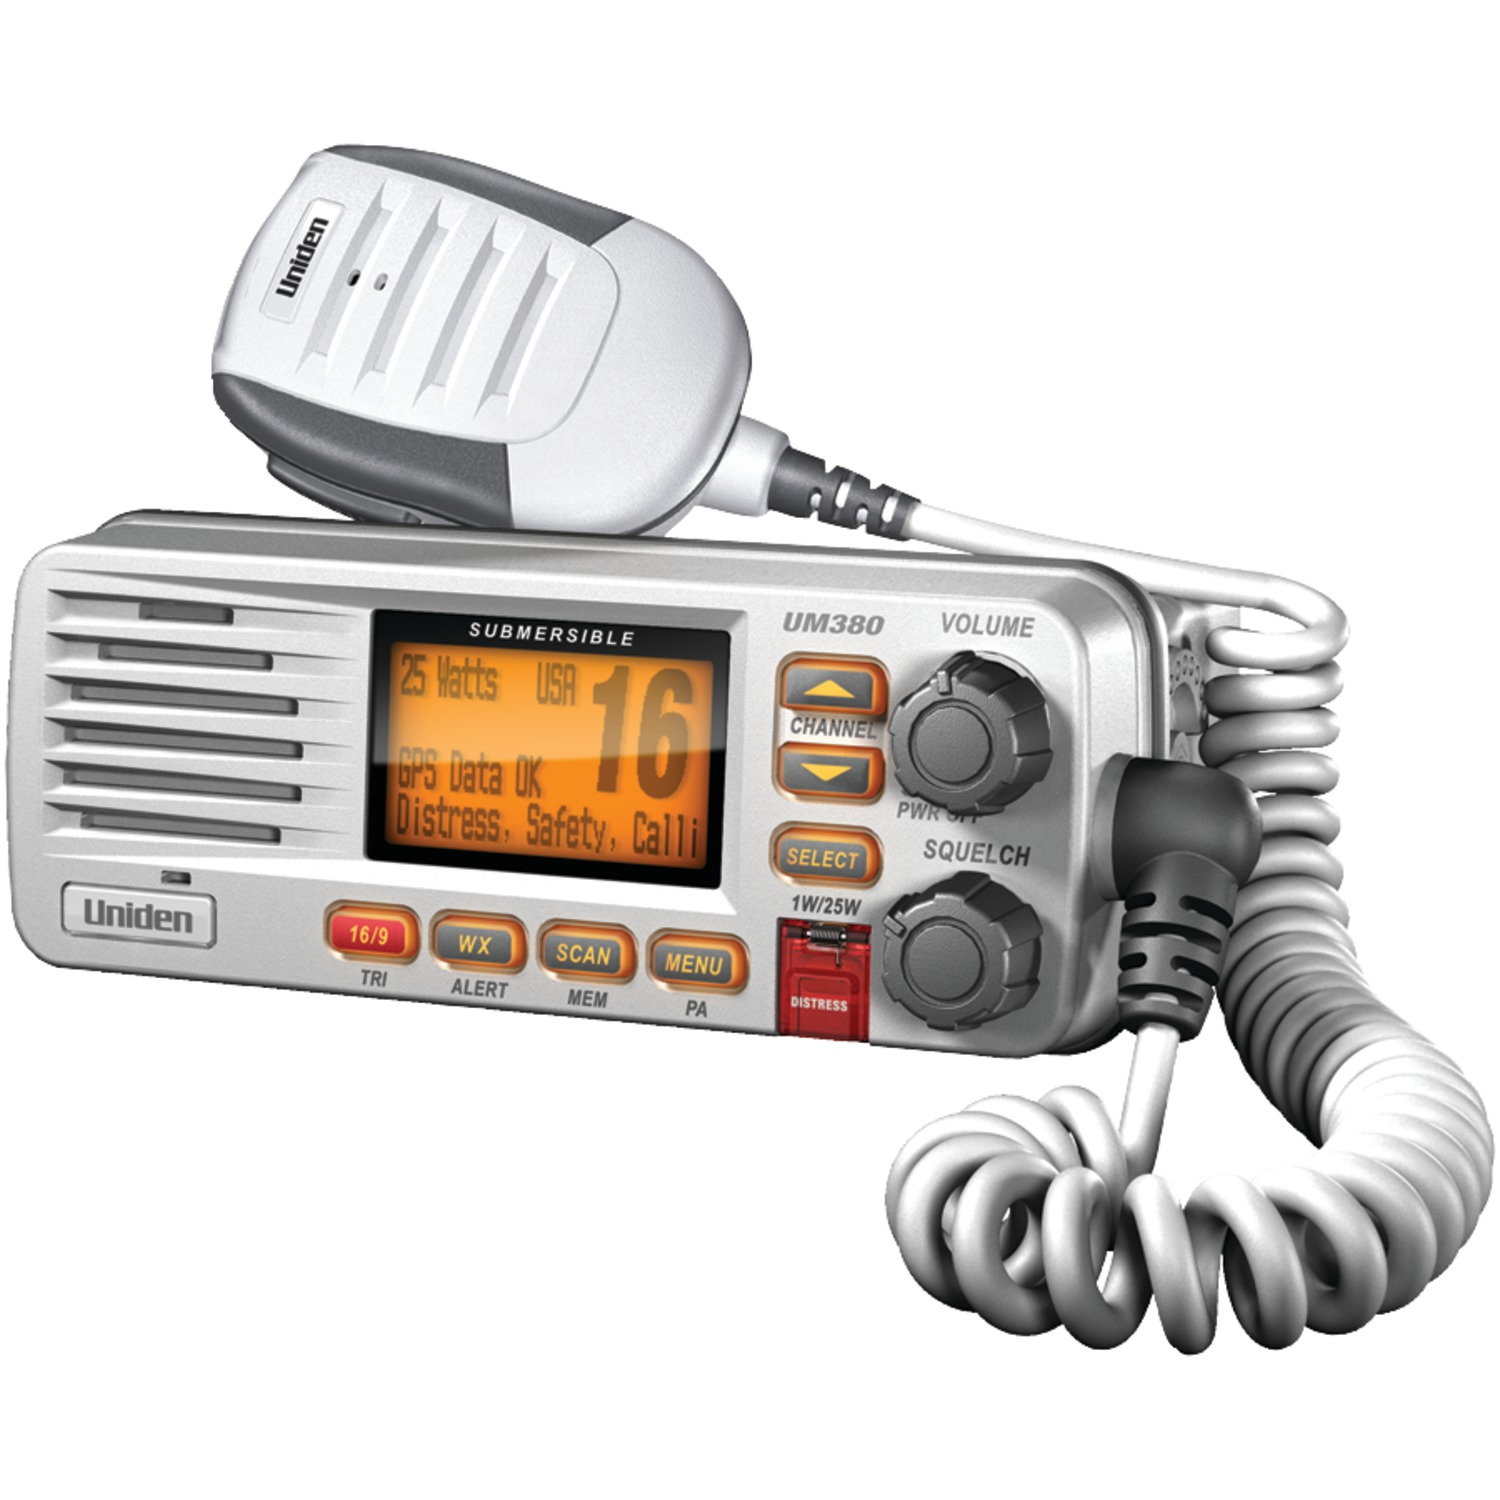 Uniden UM380 Fixed-Mount VHF 2-Way Marine Radio (White) by Uniden